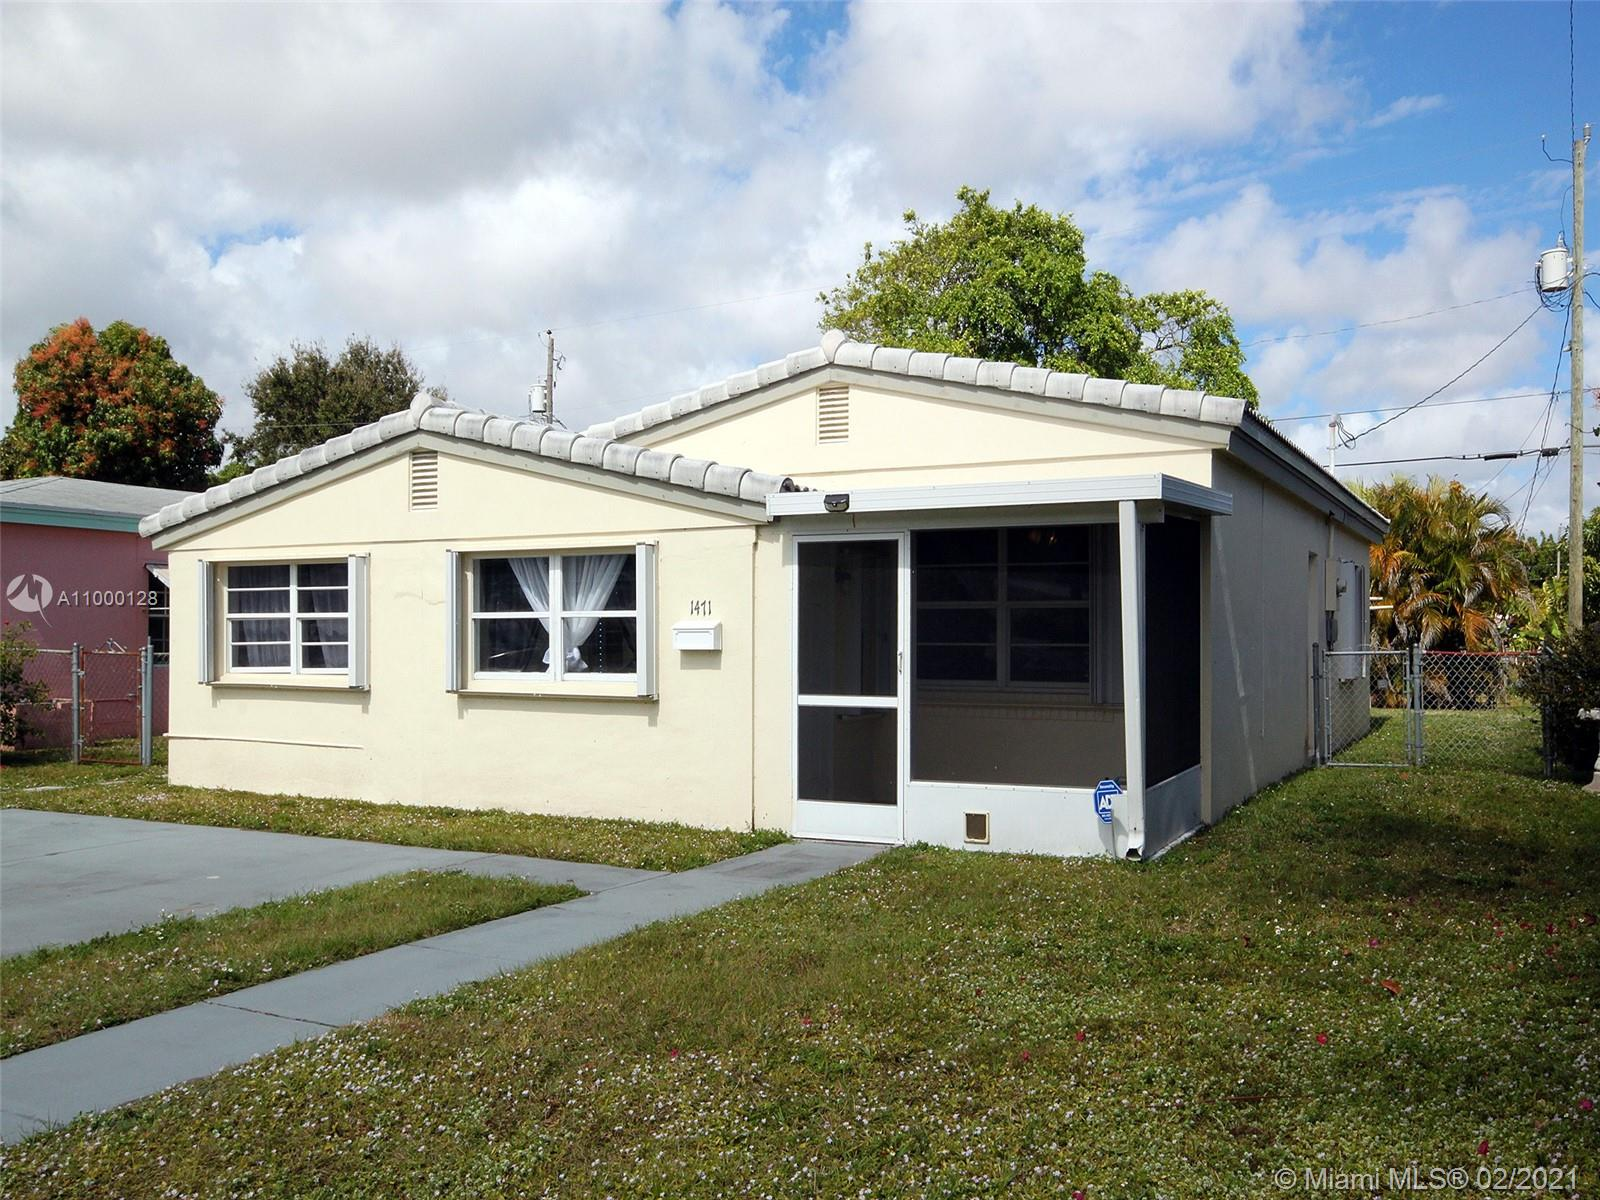 North Miami Beach - 1471 NE 180th St, North Miami Beach, FL 33162